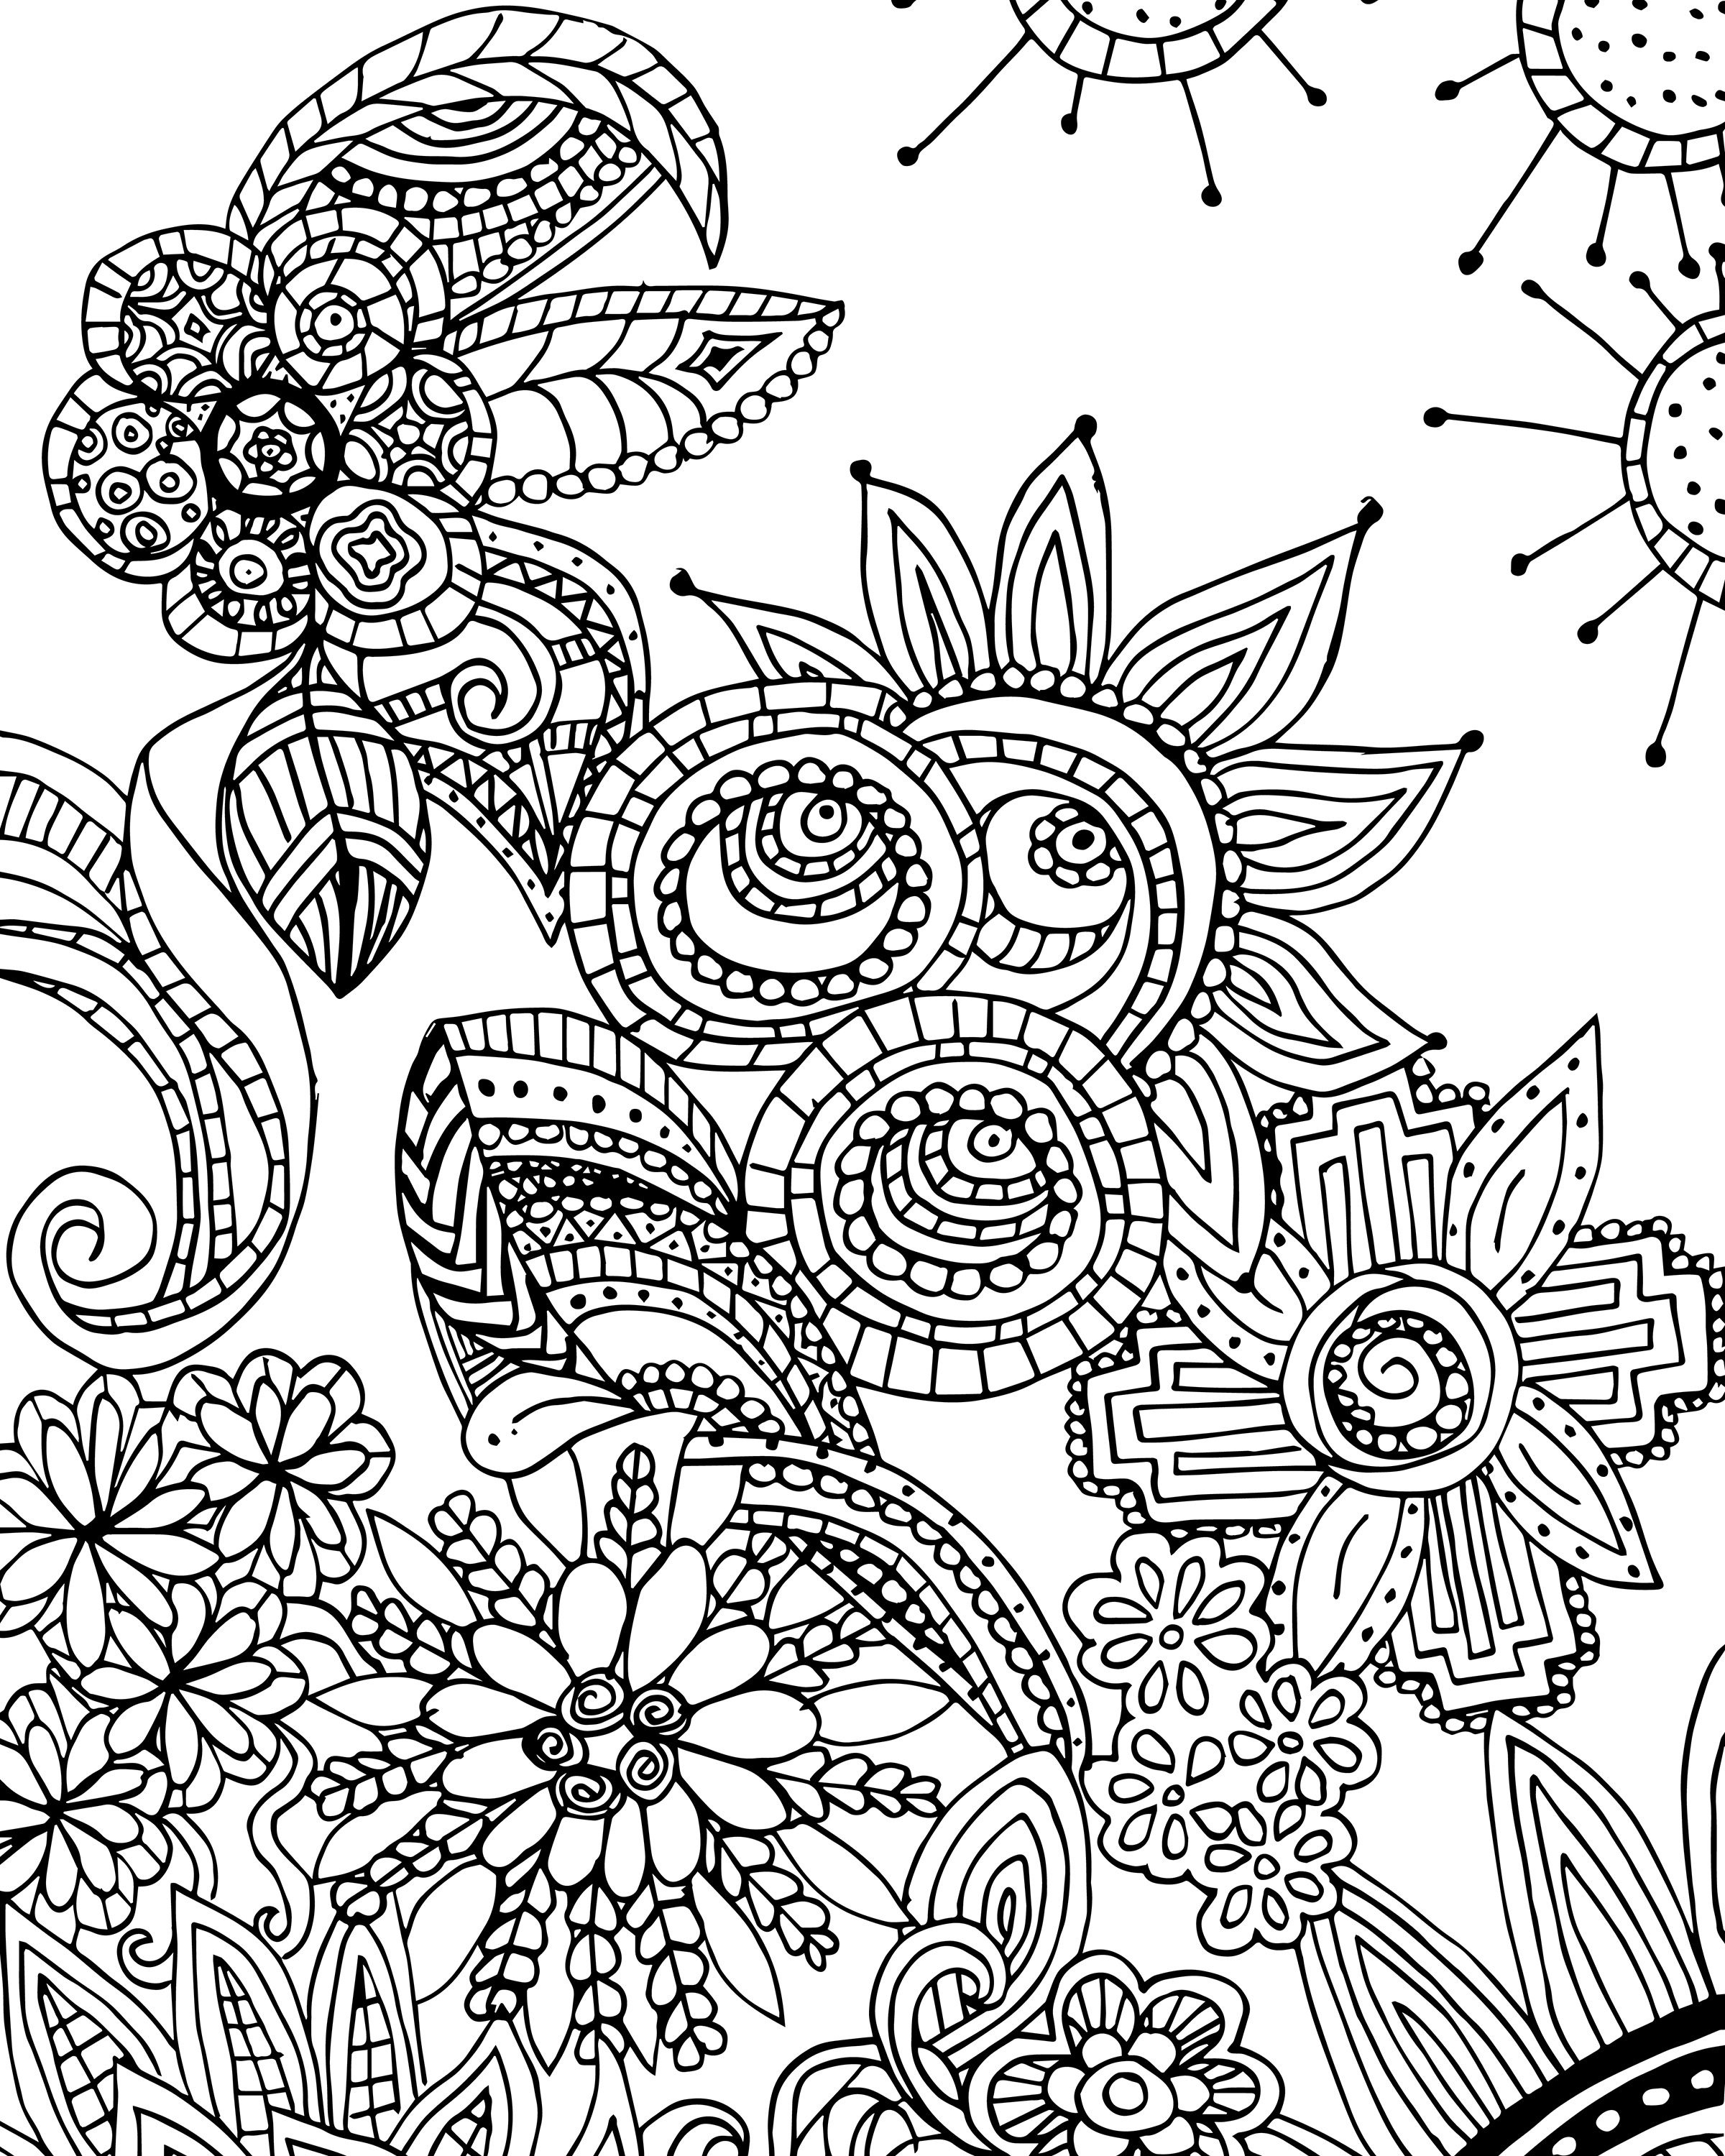 Free Coloring Page For Adults - Flower Zen Doodle Designs | Free - Free Printable Zen Coloring Pages